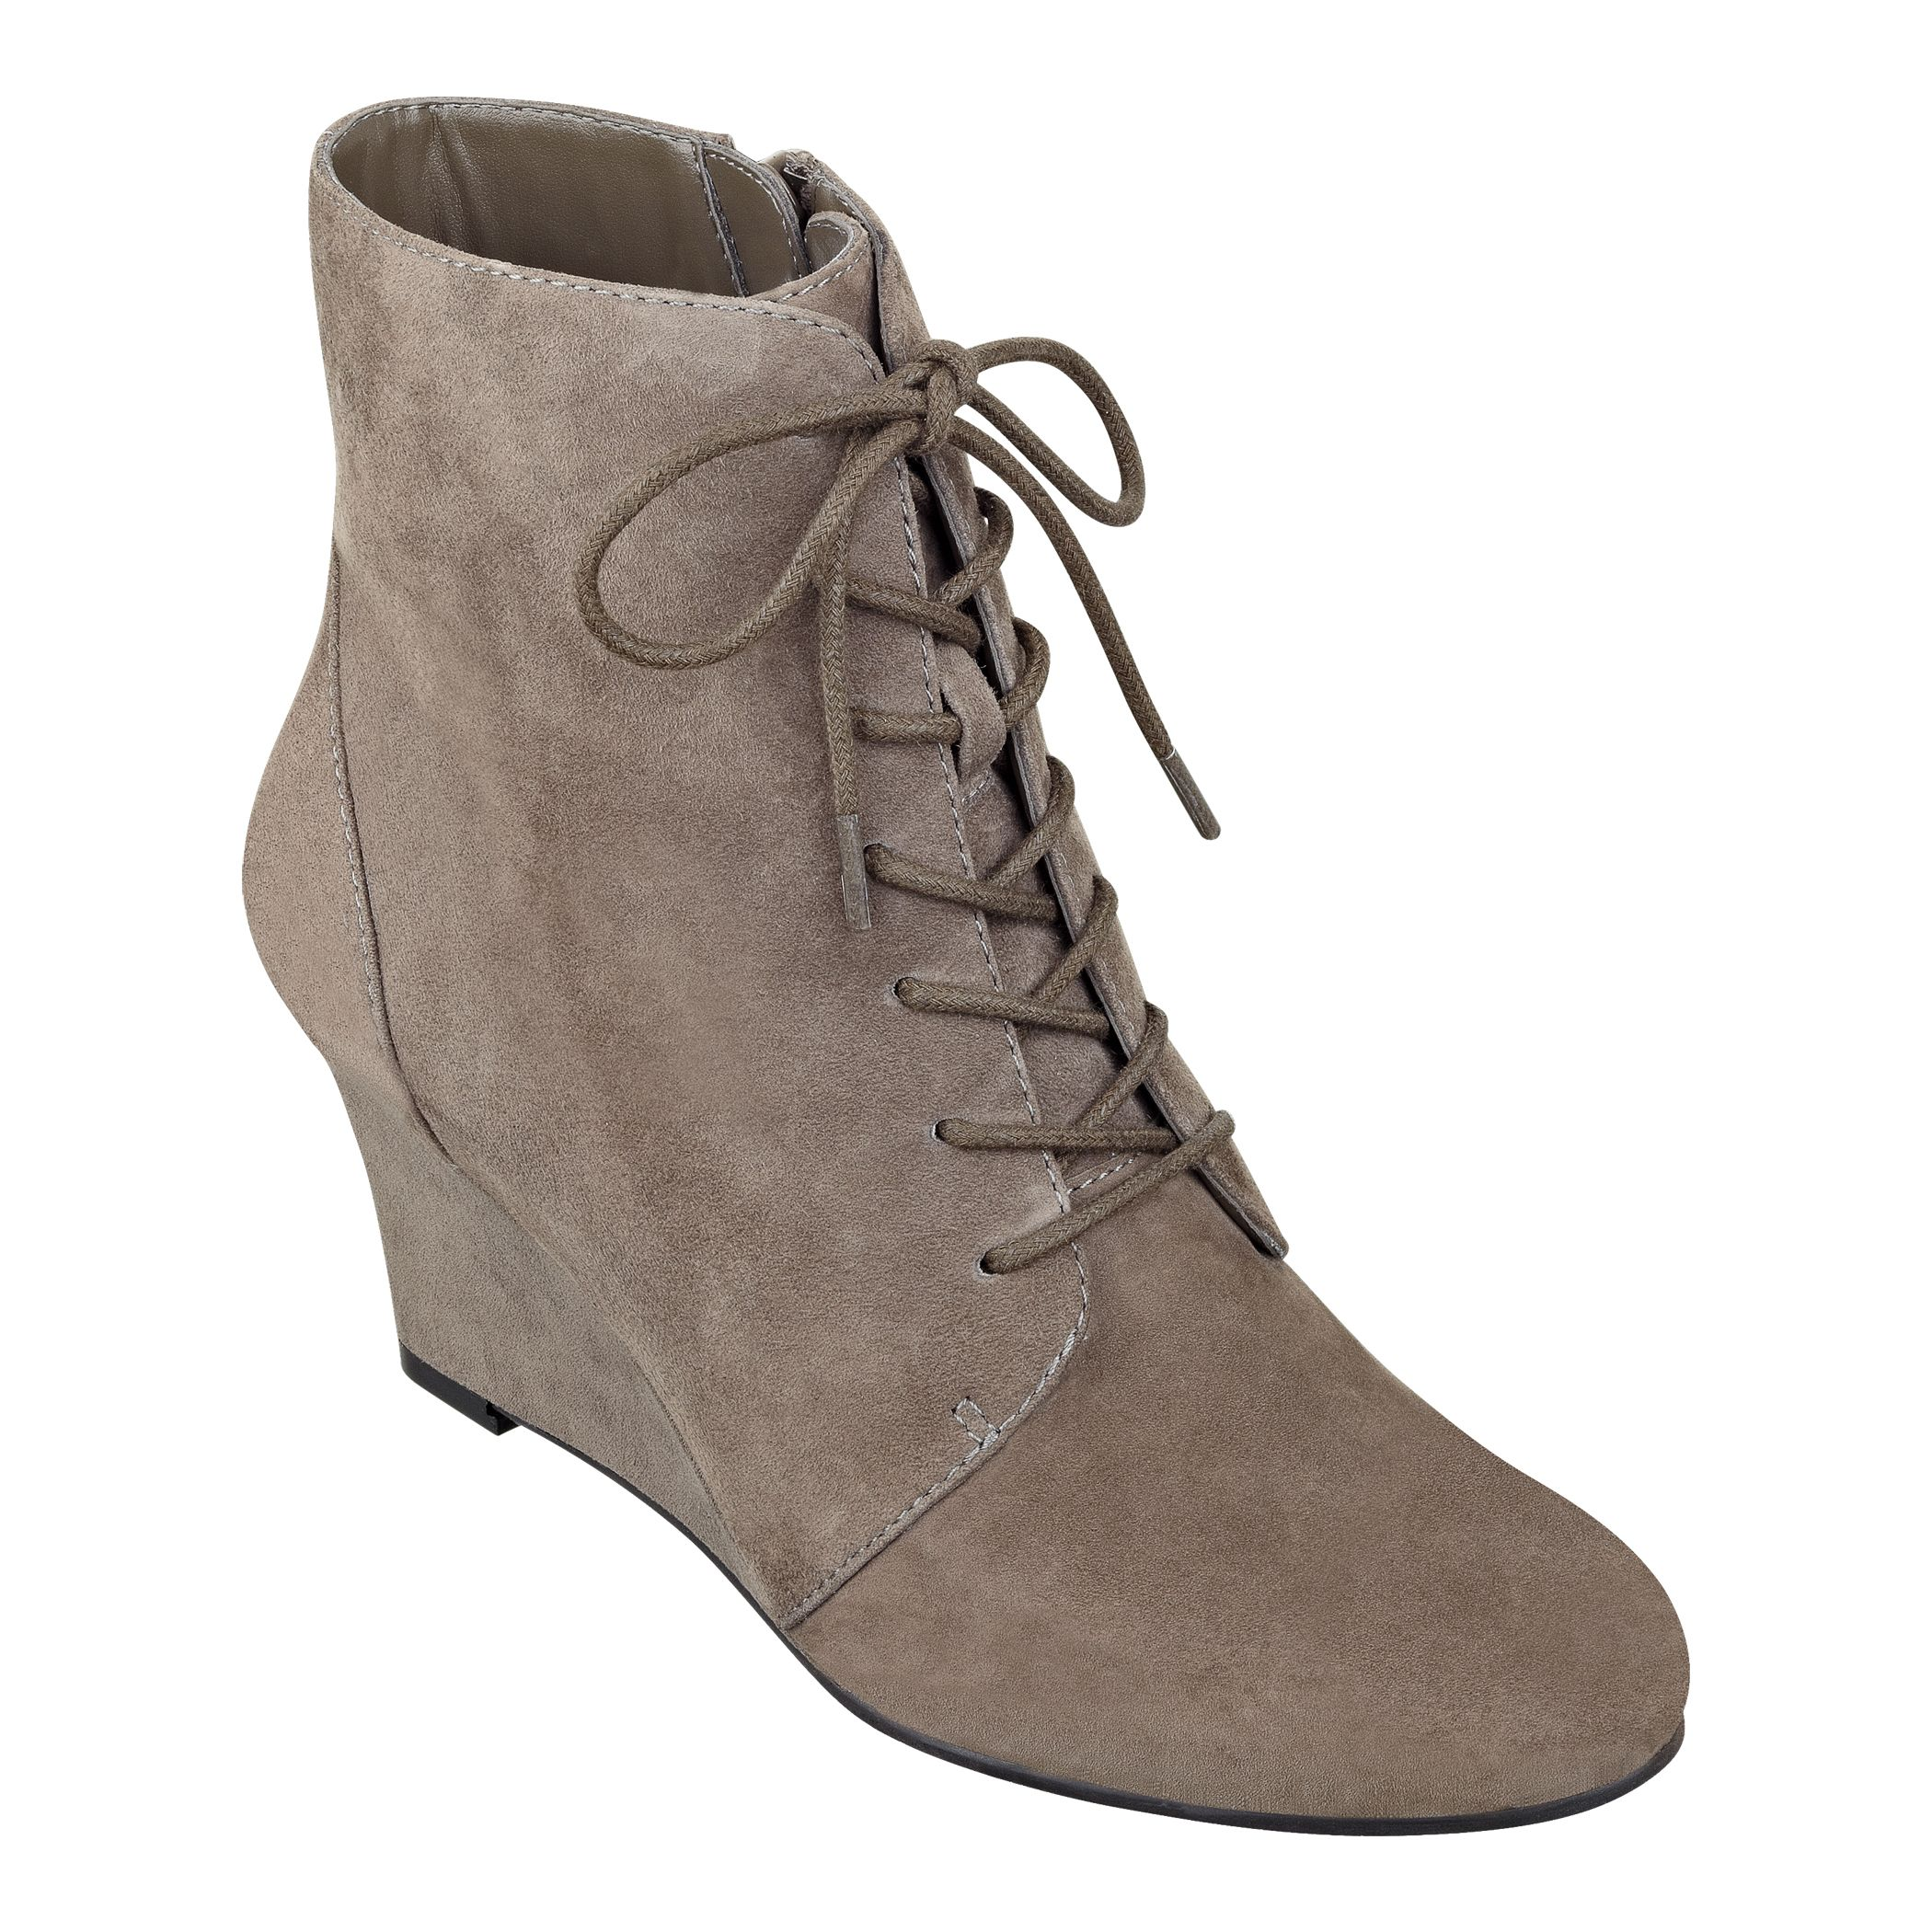 3062dfa4c1f Easy Spirit: Boots > ESHASHA - Comfortable booties for women ...